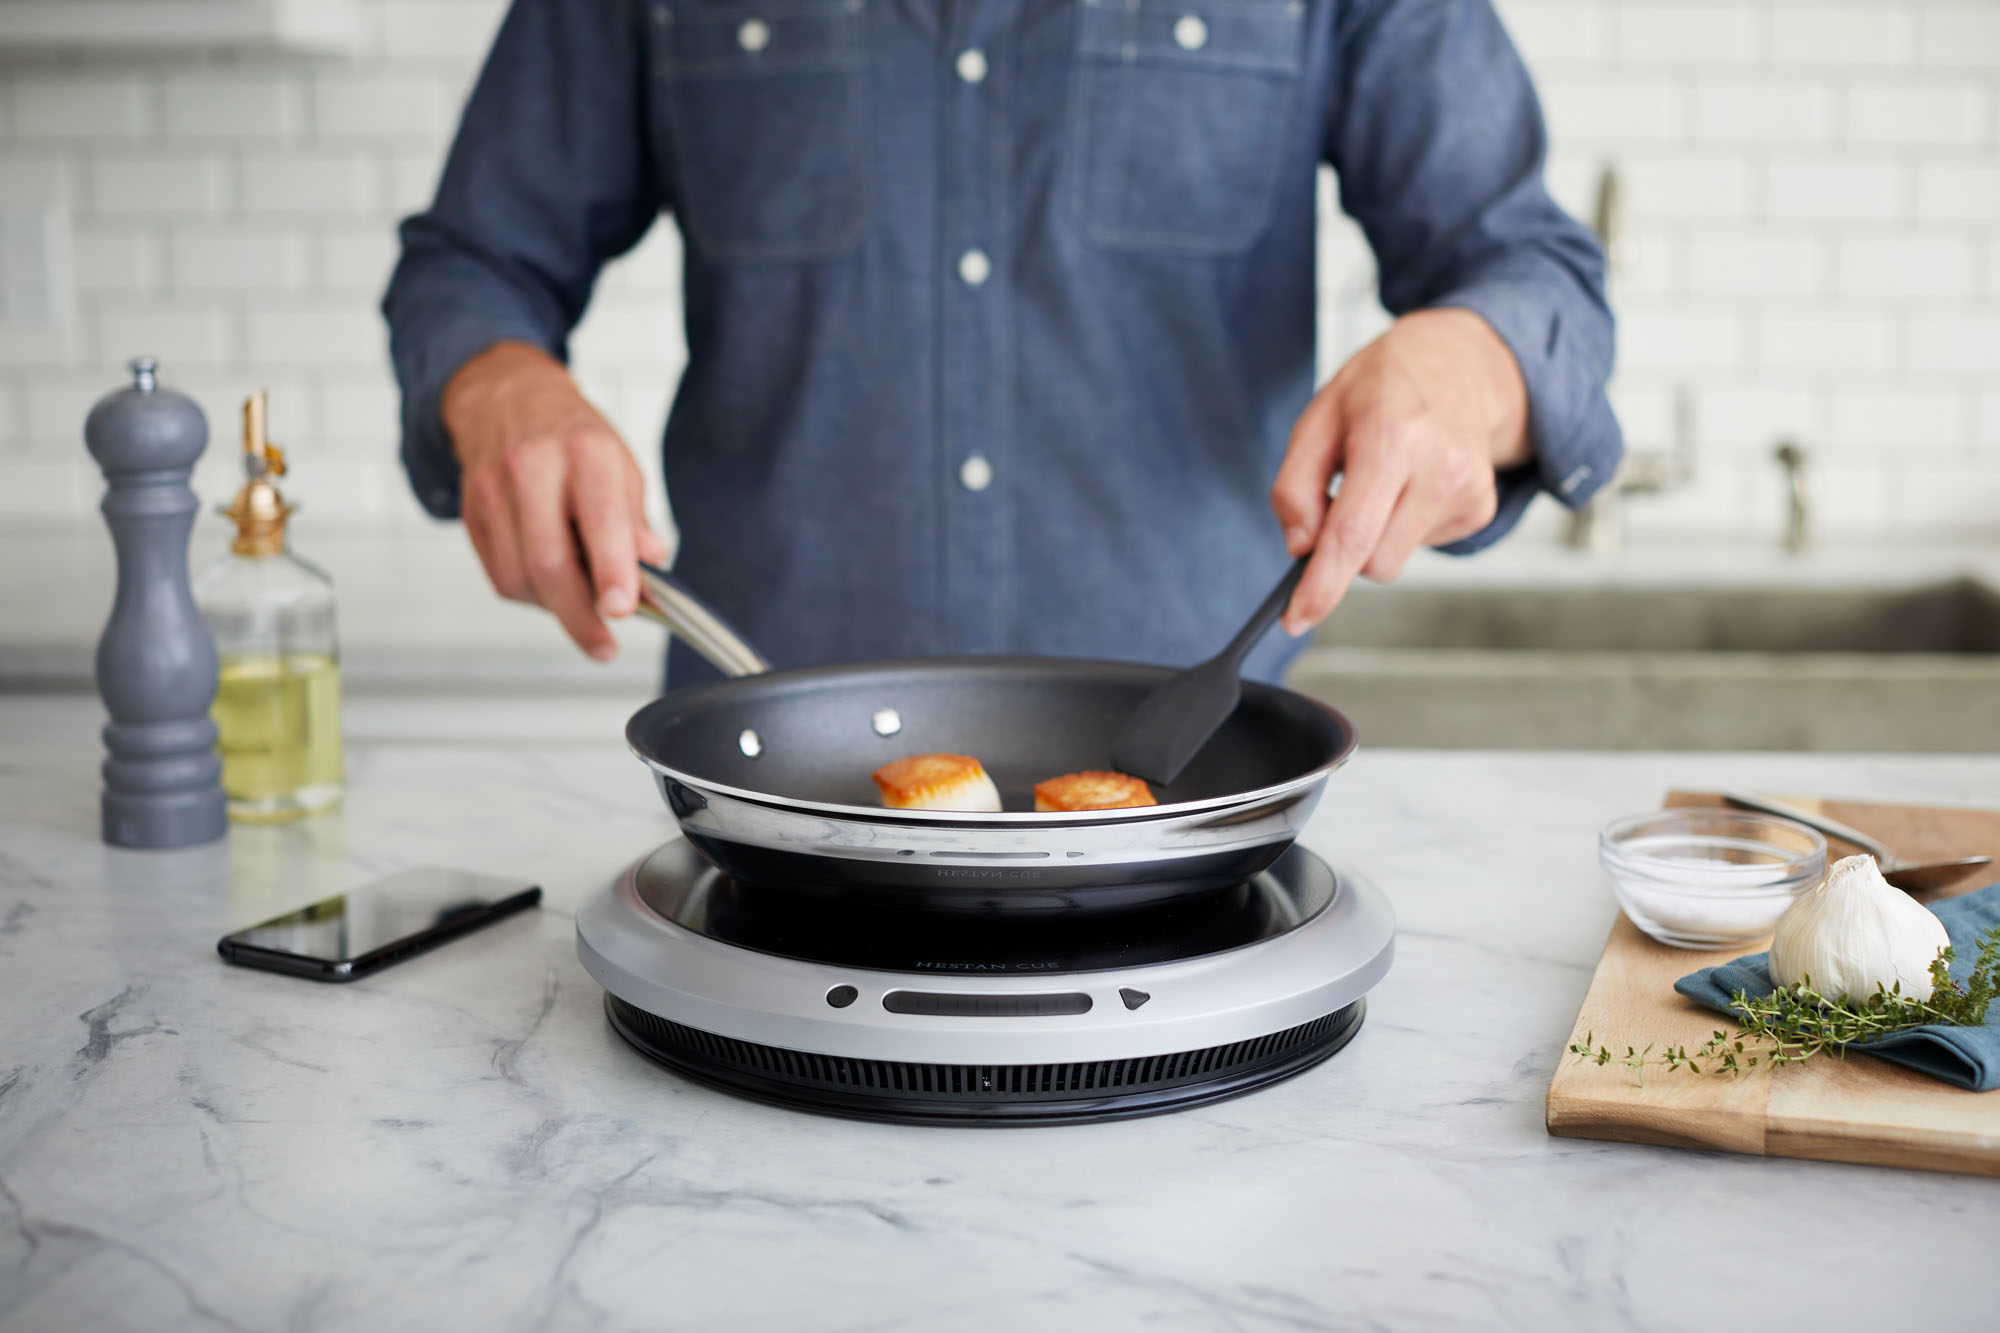 Cooking with Hestan Cue Connected Cookware System